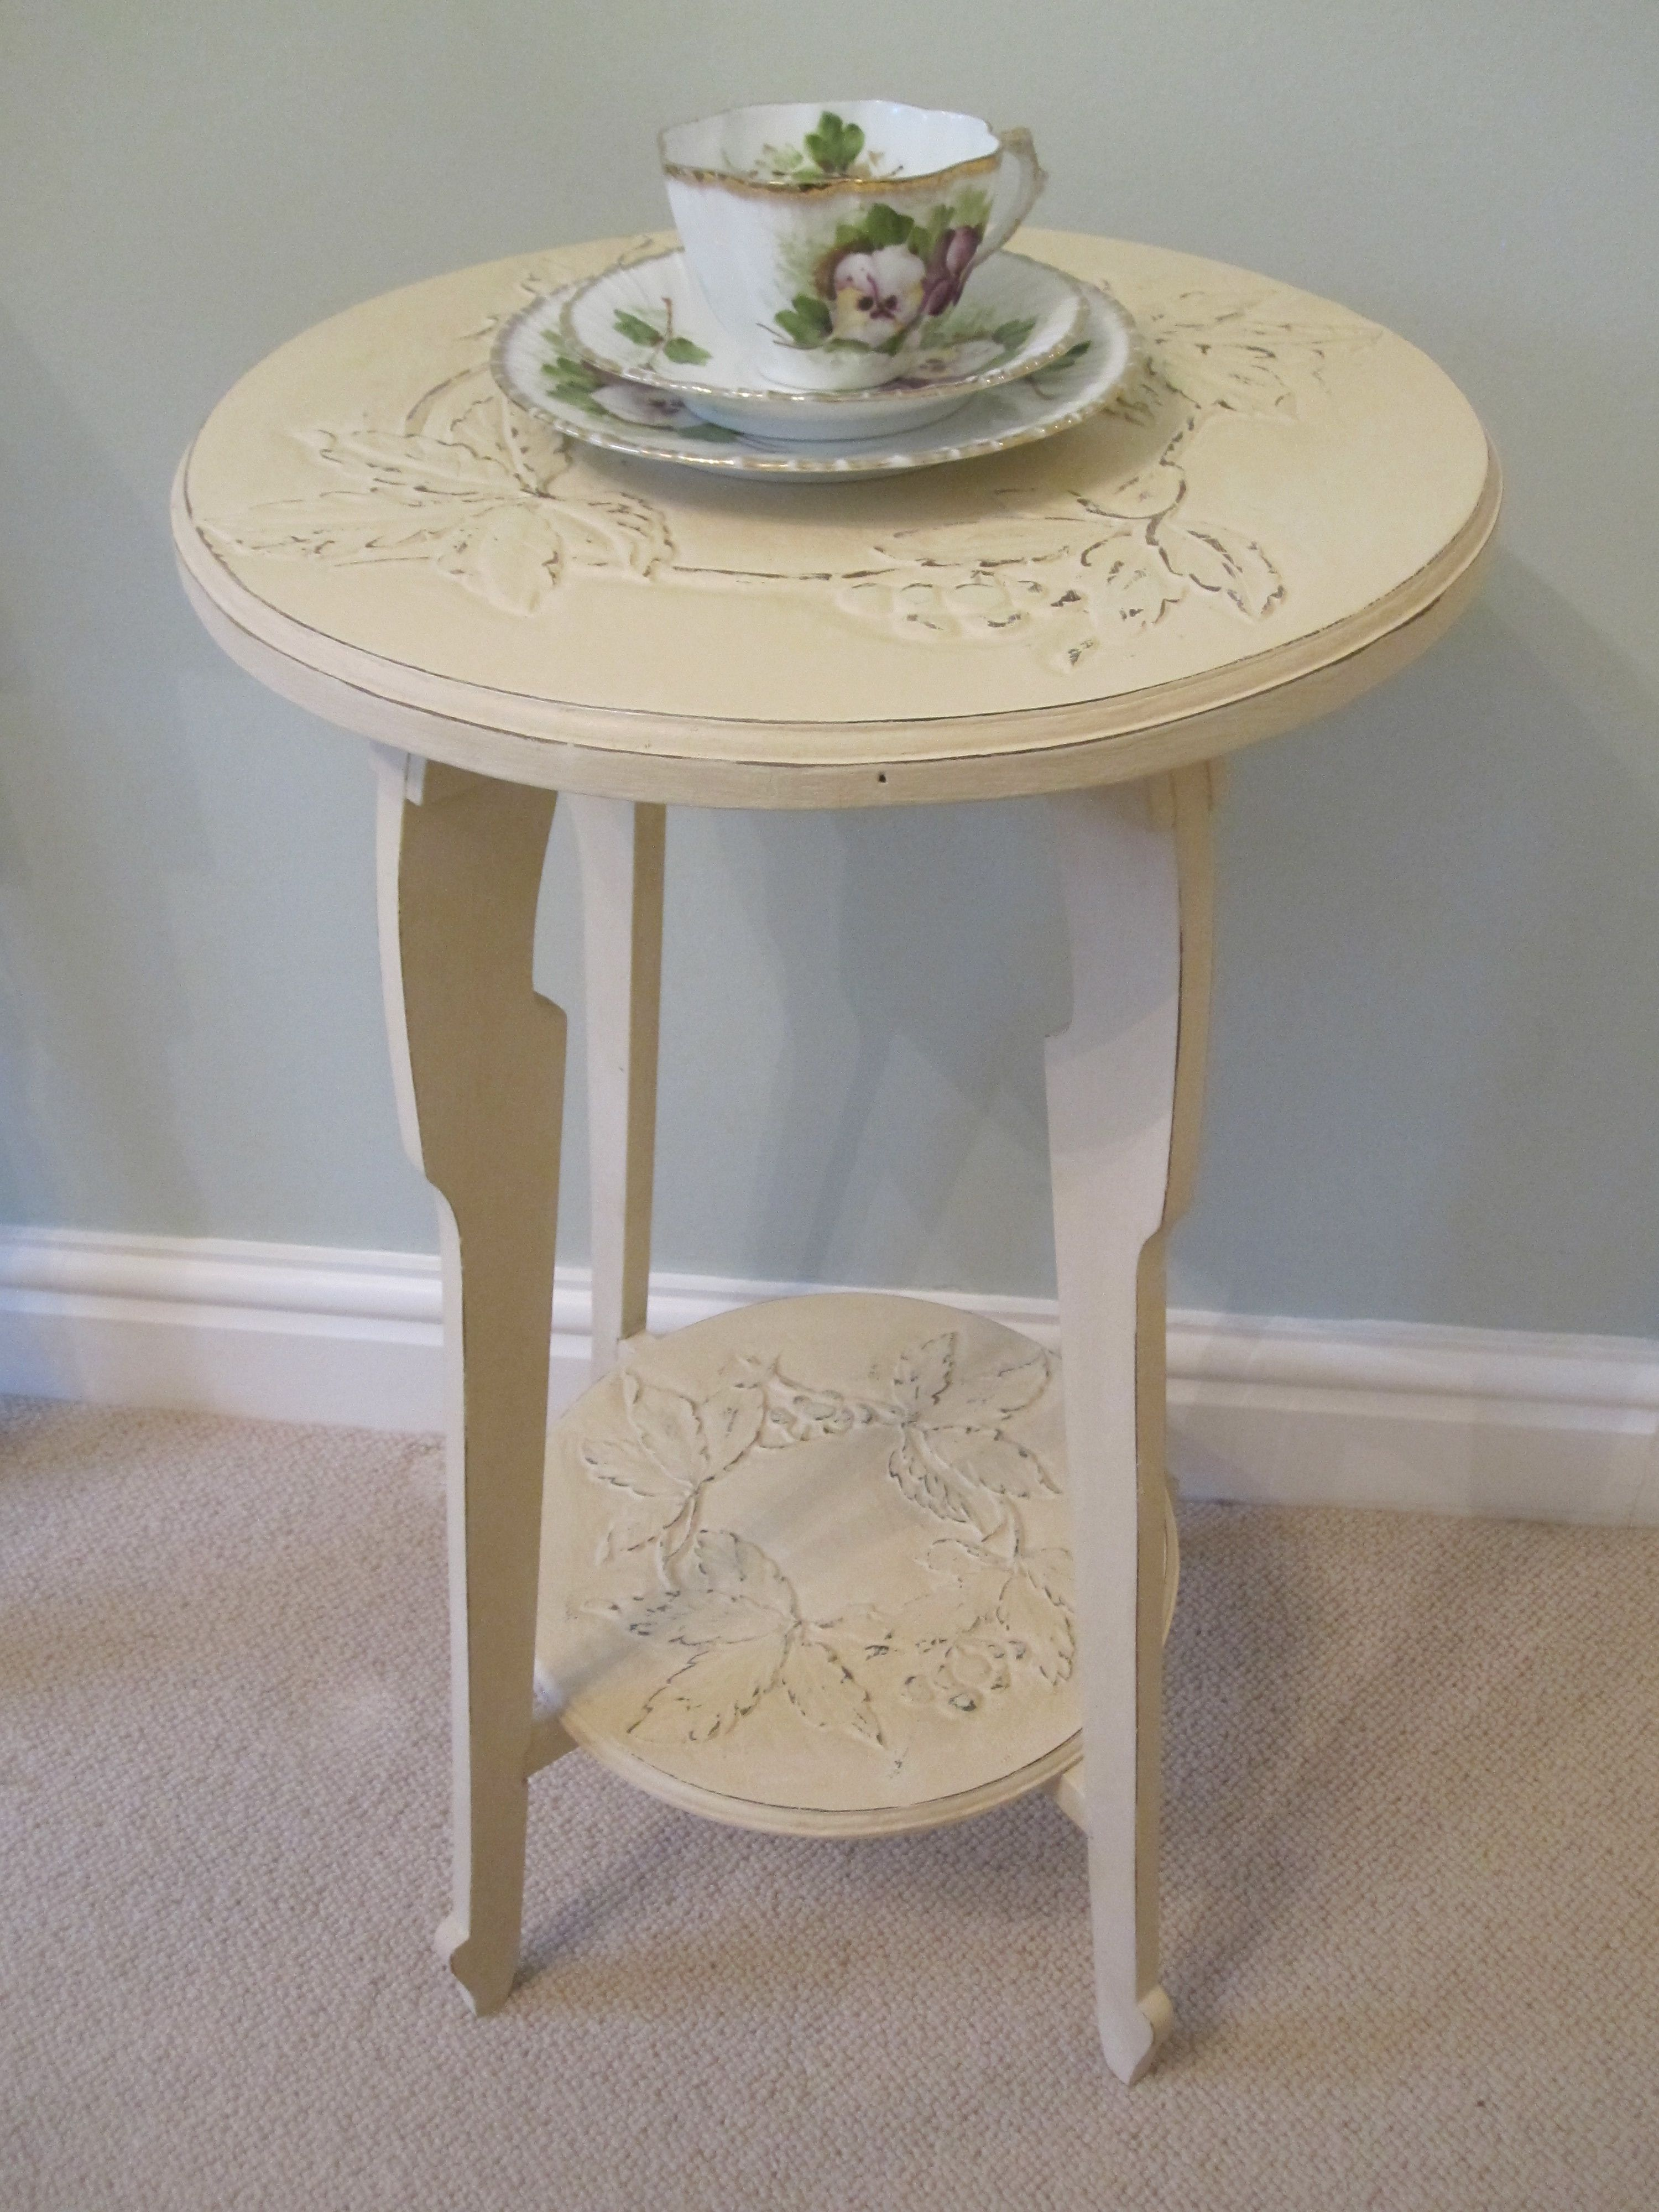 A charming vintage side table with beautiful floral carved detail, painted in Old Ochre Chalk Paint by Annie Sloan and finished with clear wax.